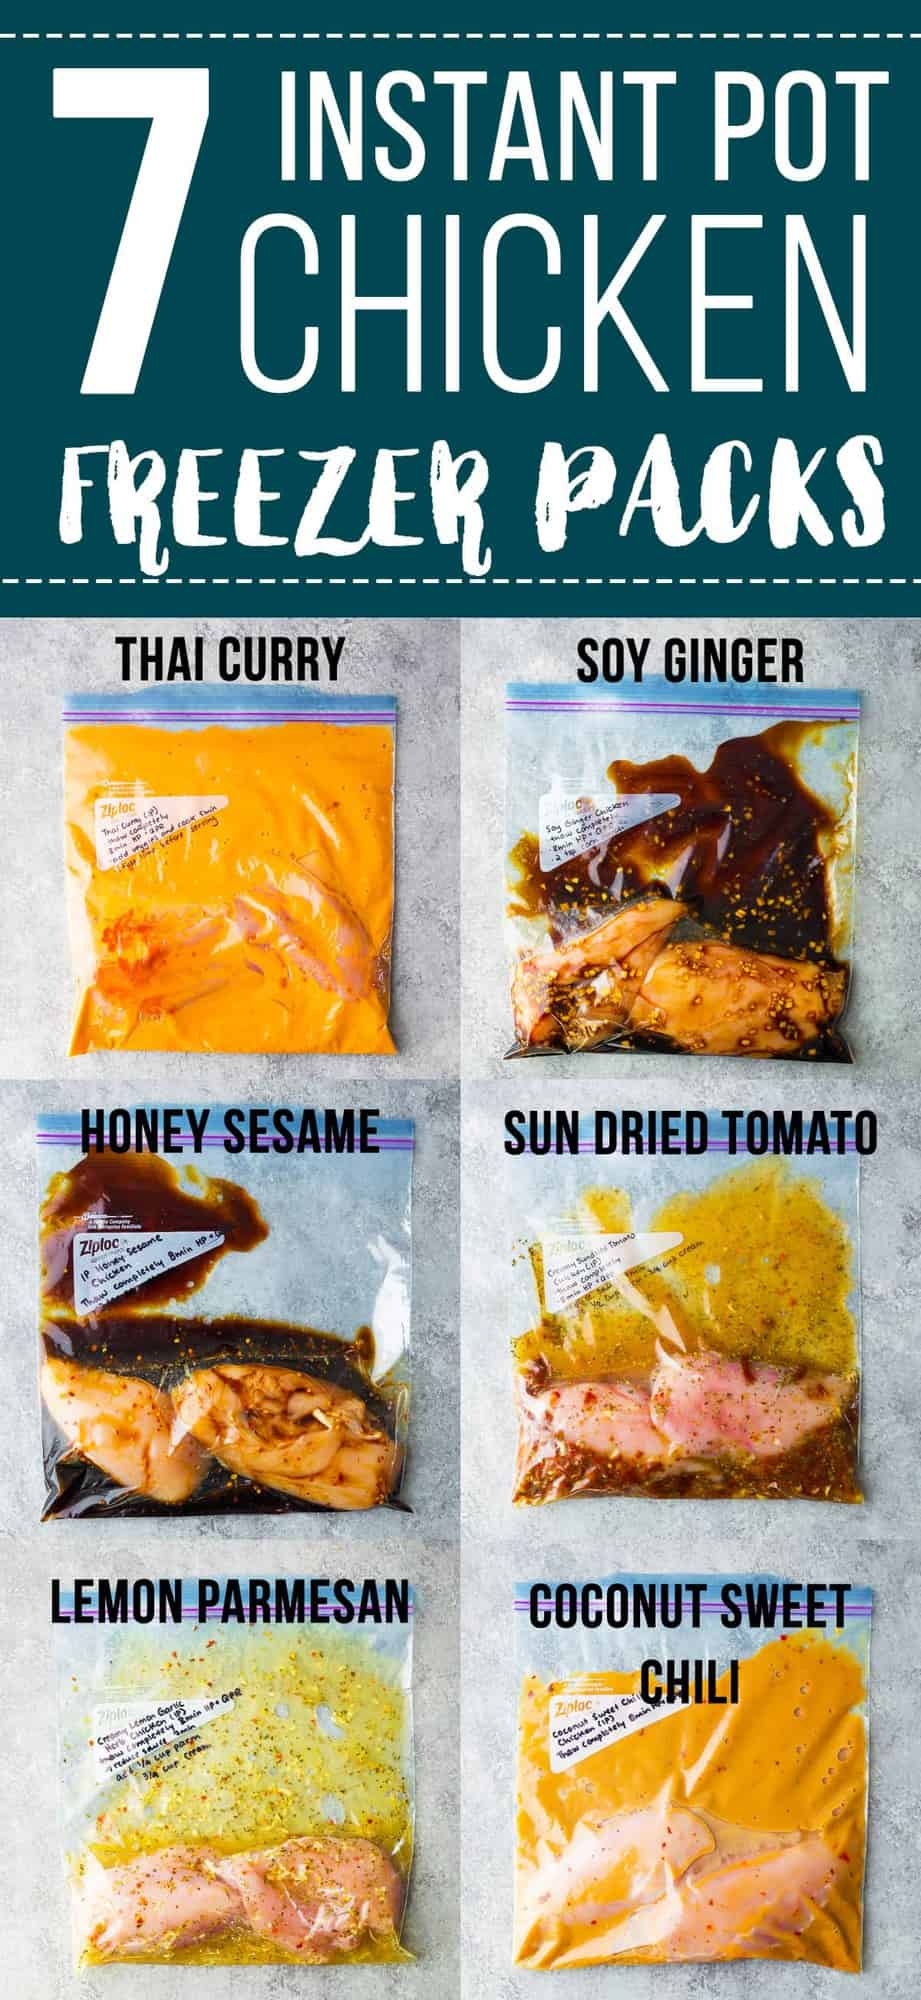 These delicious Instant Pot chicken breast recipes are the solution to weeknight dinner stress. Assemble the ingredients ahead and freeze until you are ready to cook up! SEVEN flavors so you will never get bored with dinner, and each one comes with a sauce that is perfect for spooning over rice and veggies. frozen instant pot chicken breast, healthy instant pot chicken breast #sweetpeasandsaffron #mealprep #chicken #instantpot #freezer